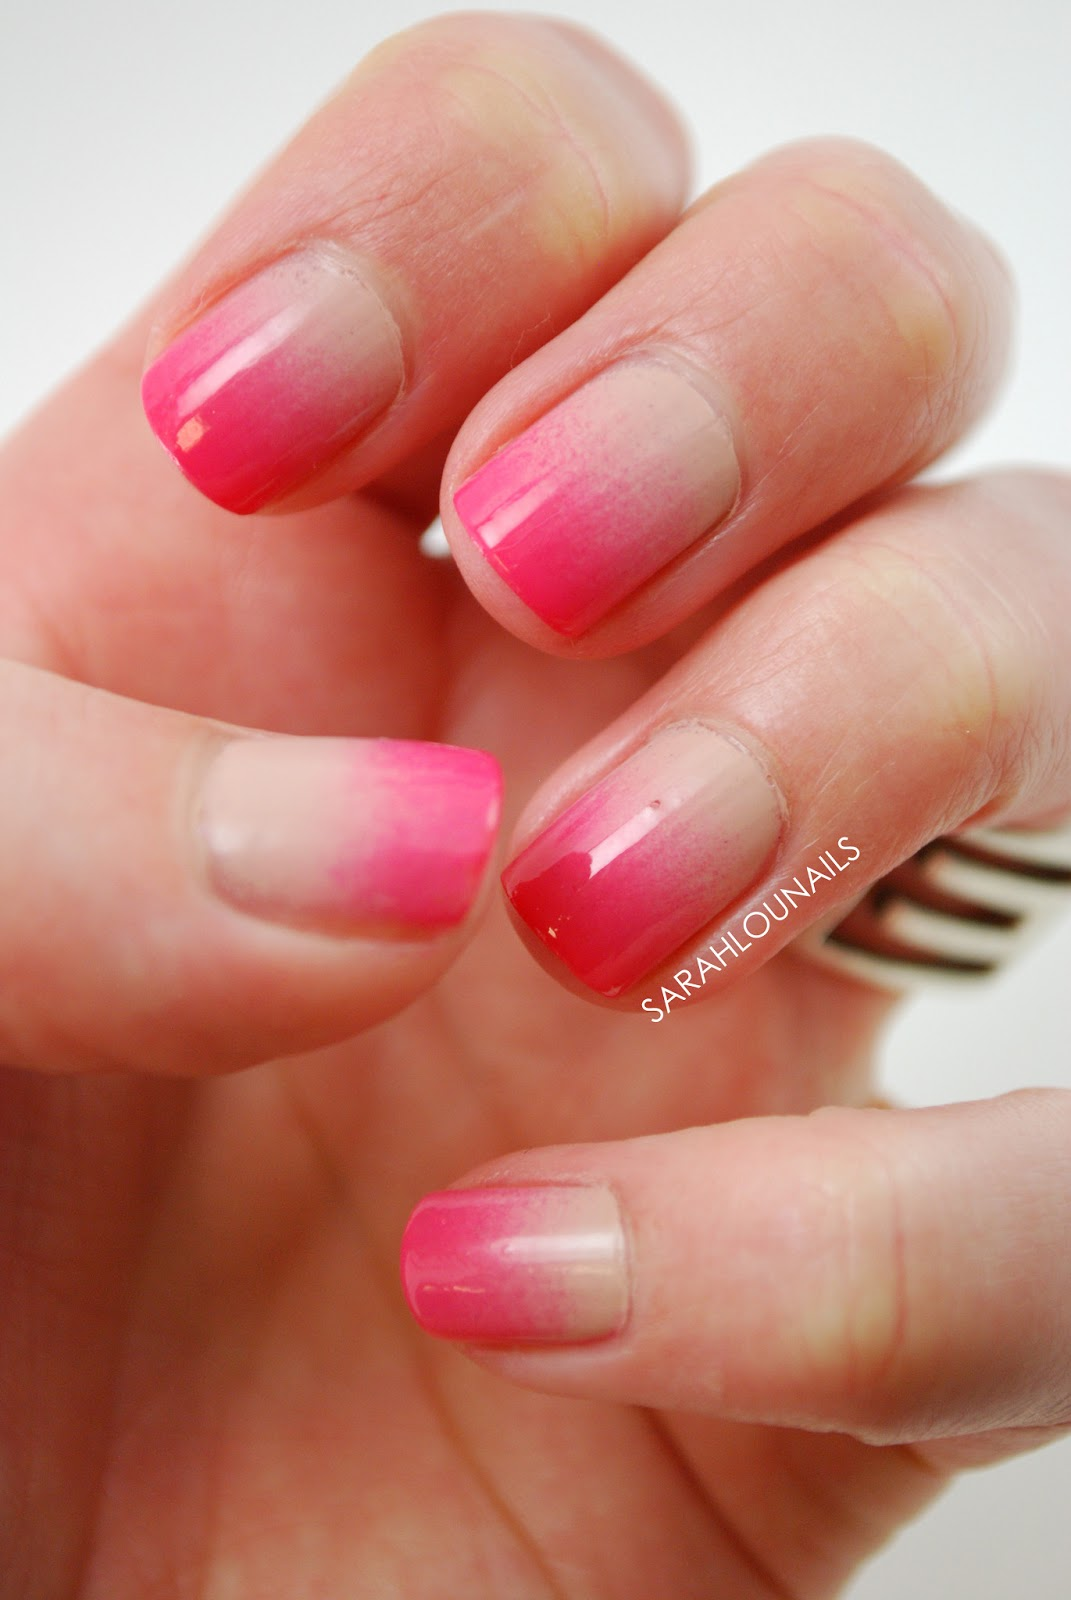 sarah lou nails nude to pink gradient nails. Black Bedroom Furniture Sets. Home Design Ideas